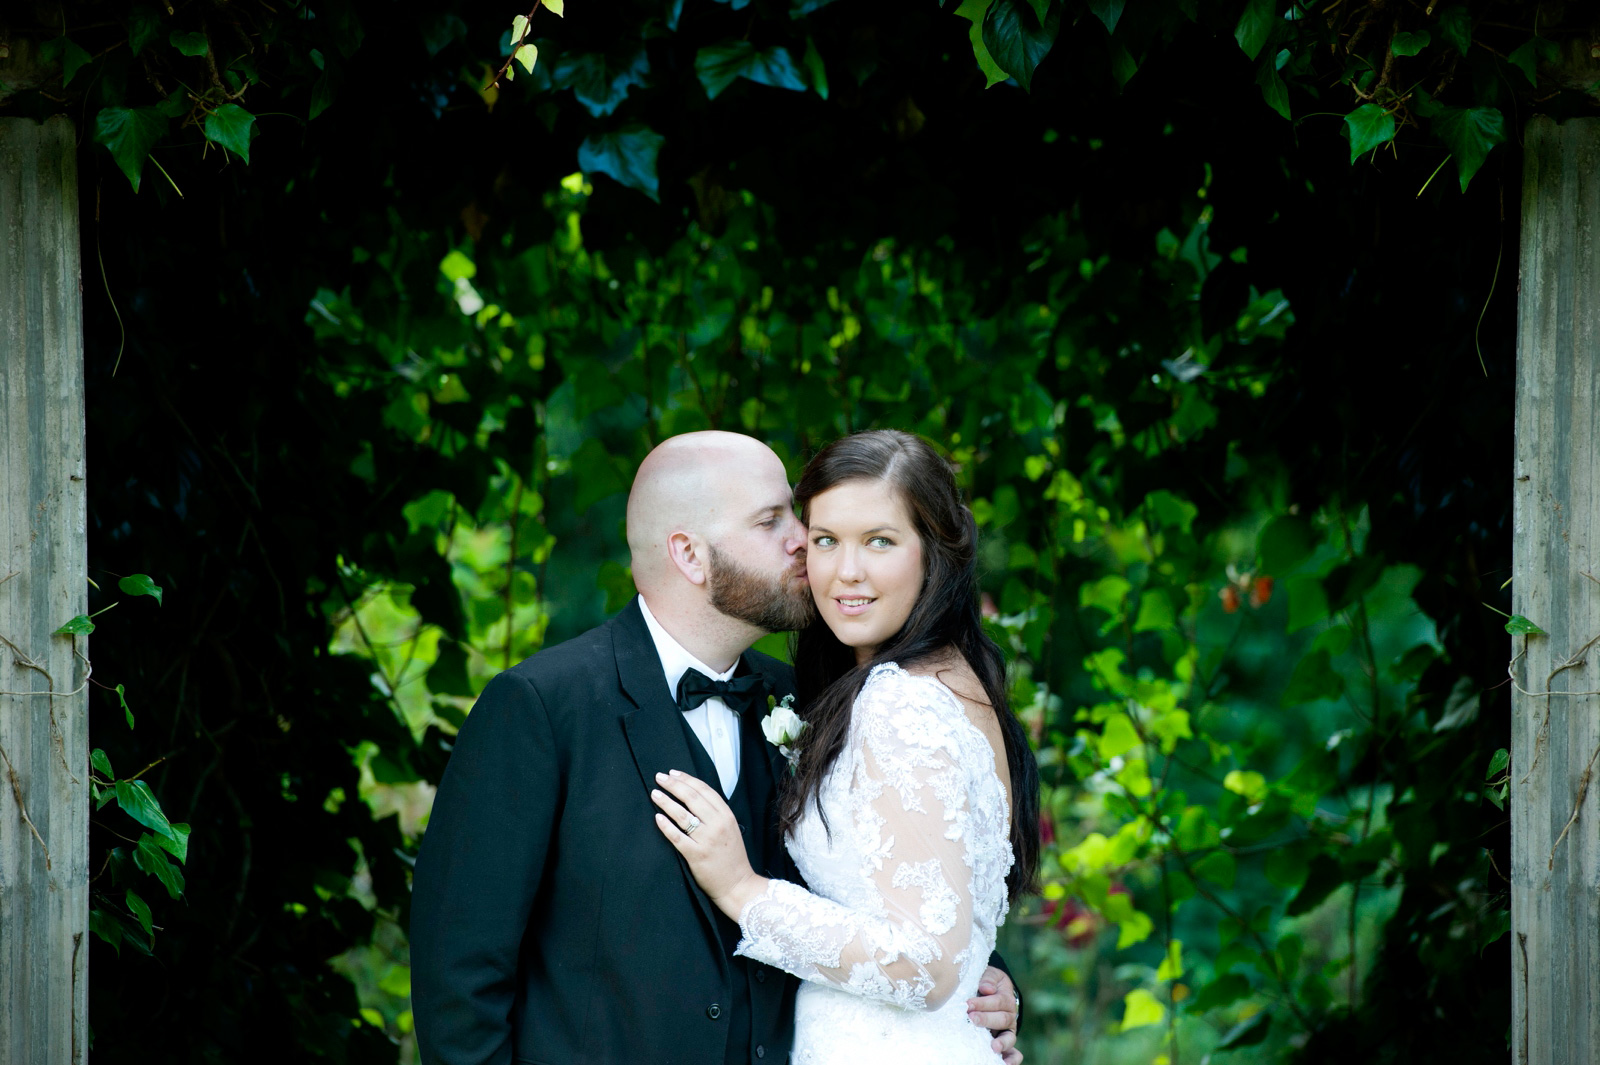 Cranford Country Lodge Documentary Wedding Photography Couple Creative Shoot